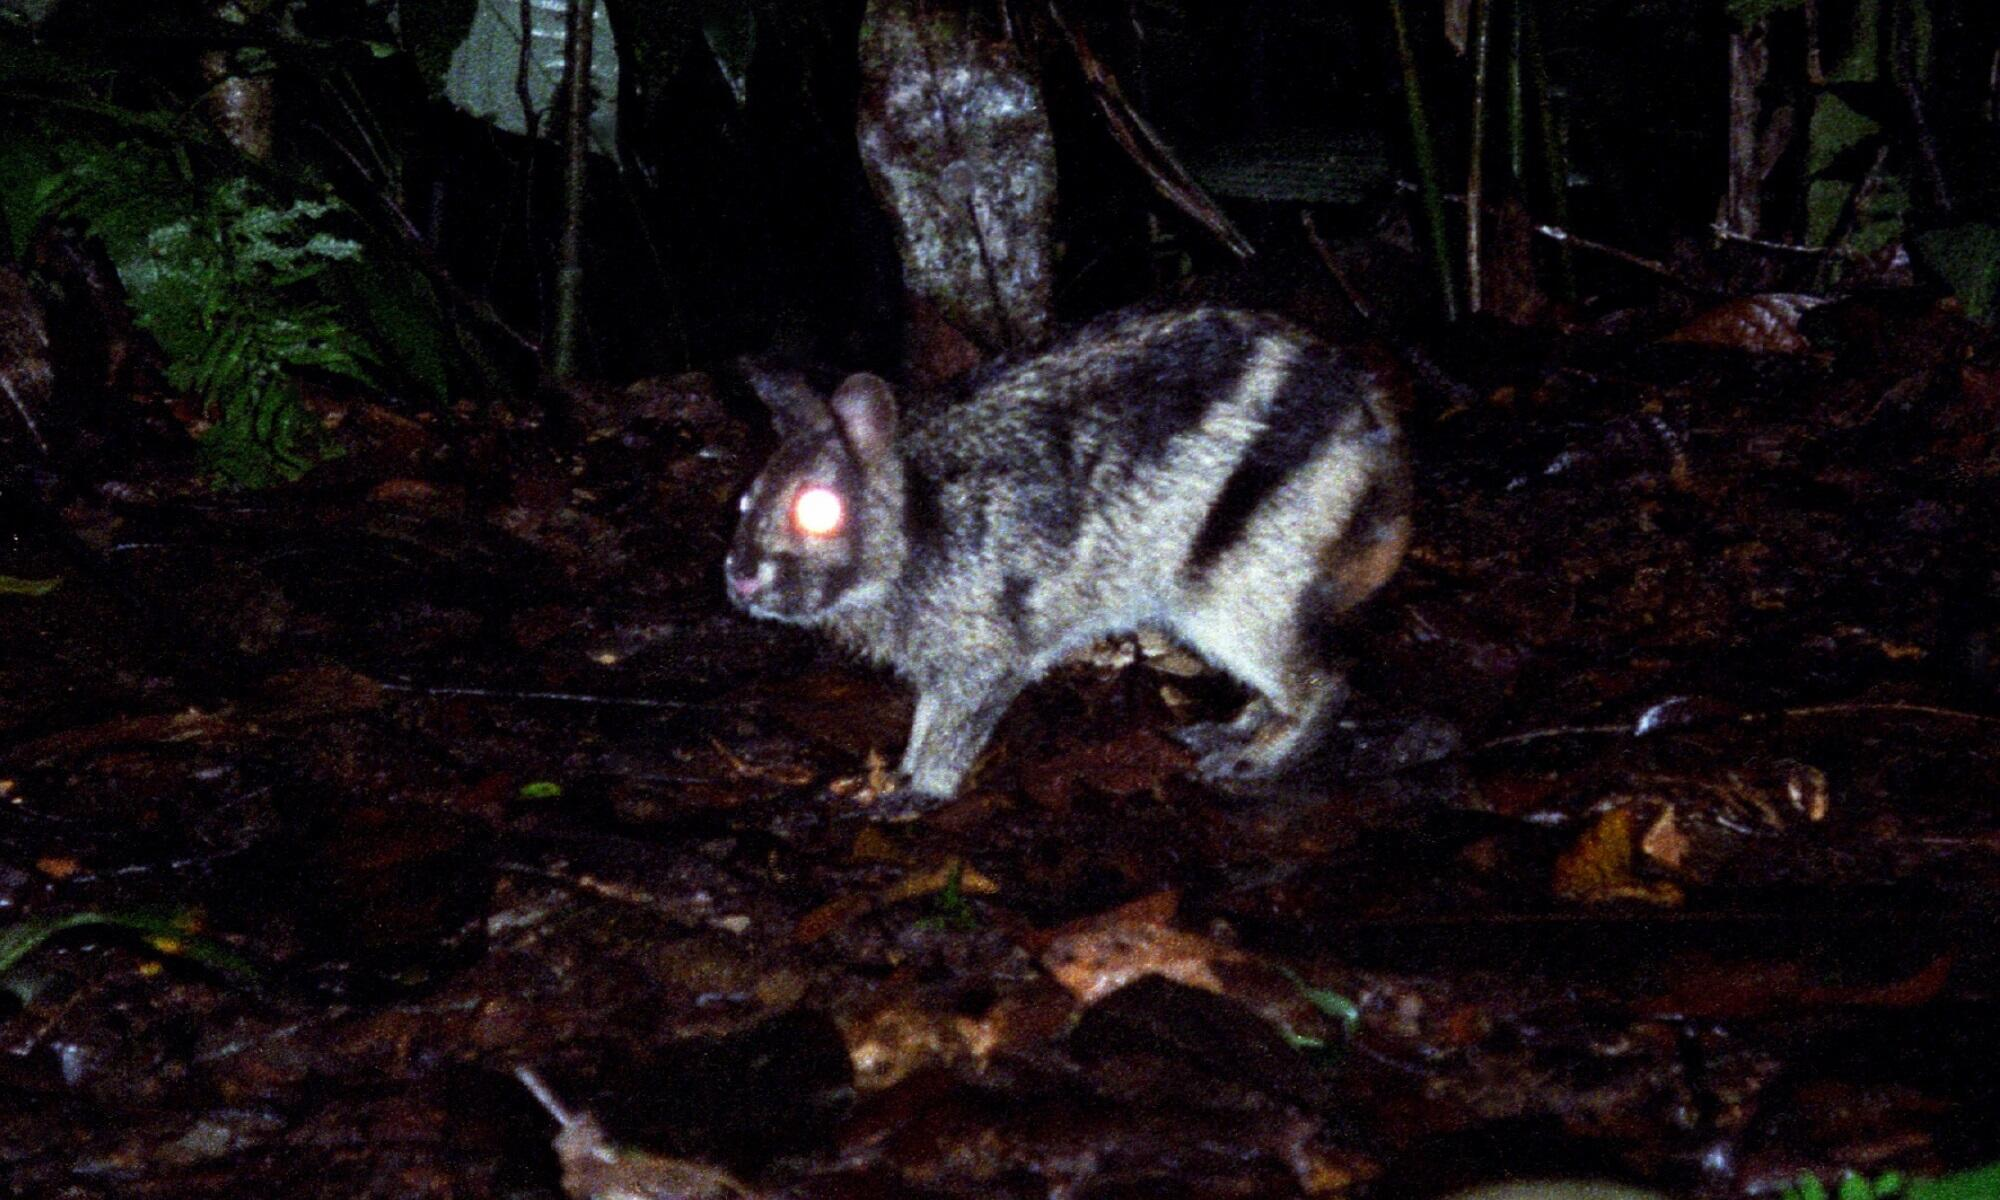 for-sale-in-sumatra-worlds-rarest-rabbit-spotted-on-facebook-2000x1200